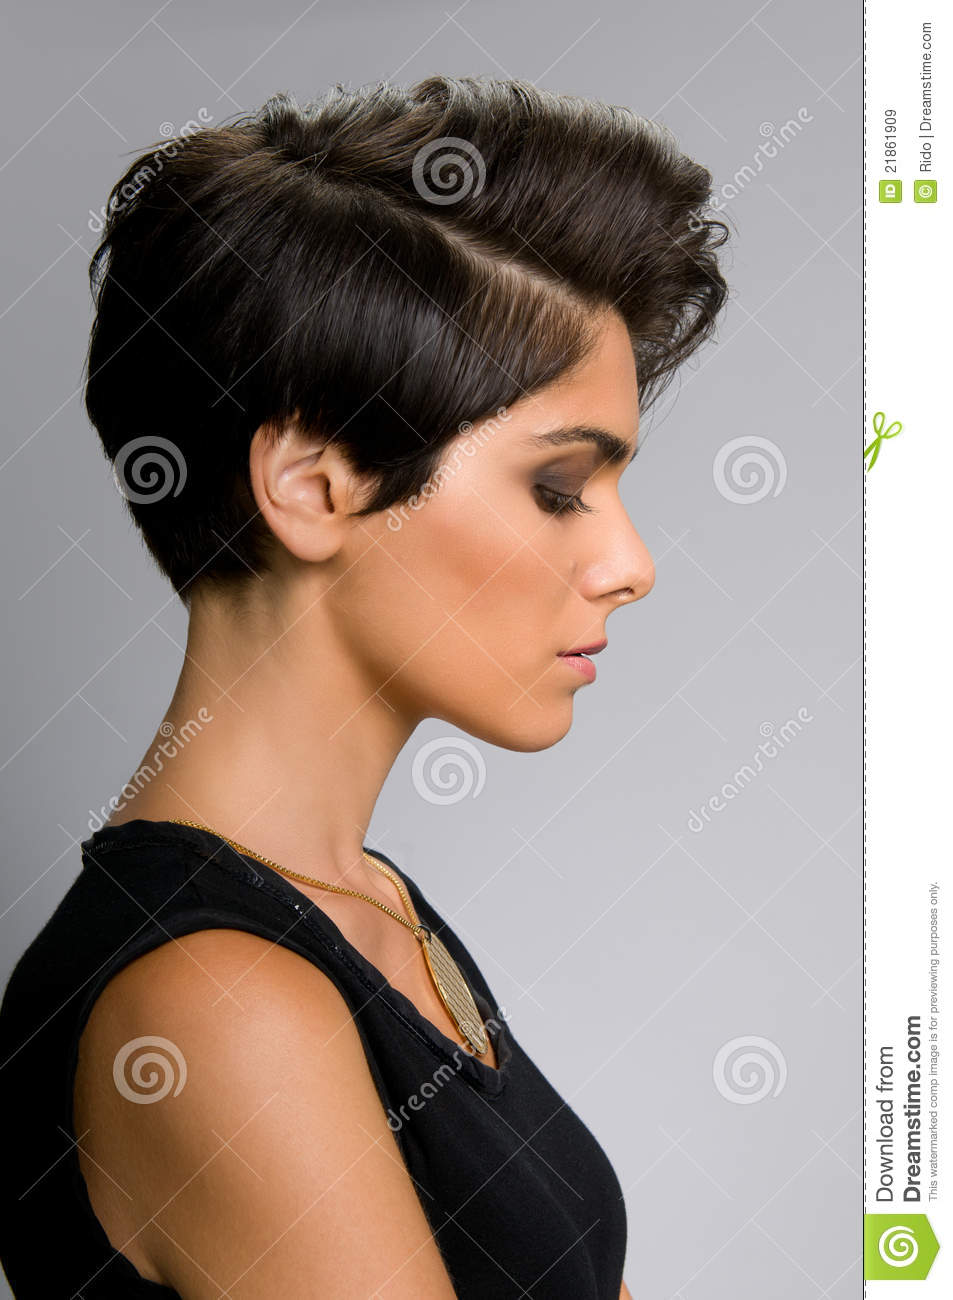 Hairstyle Profile Stock Image Image Of Looking Beautiful 21861909